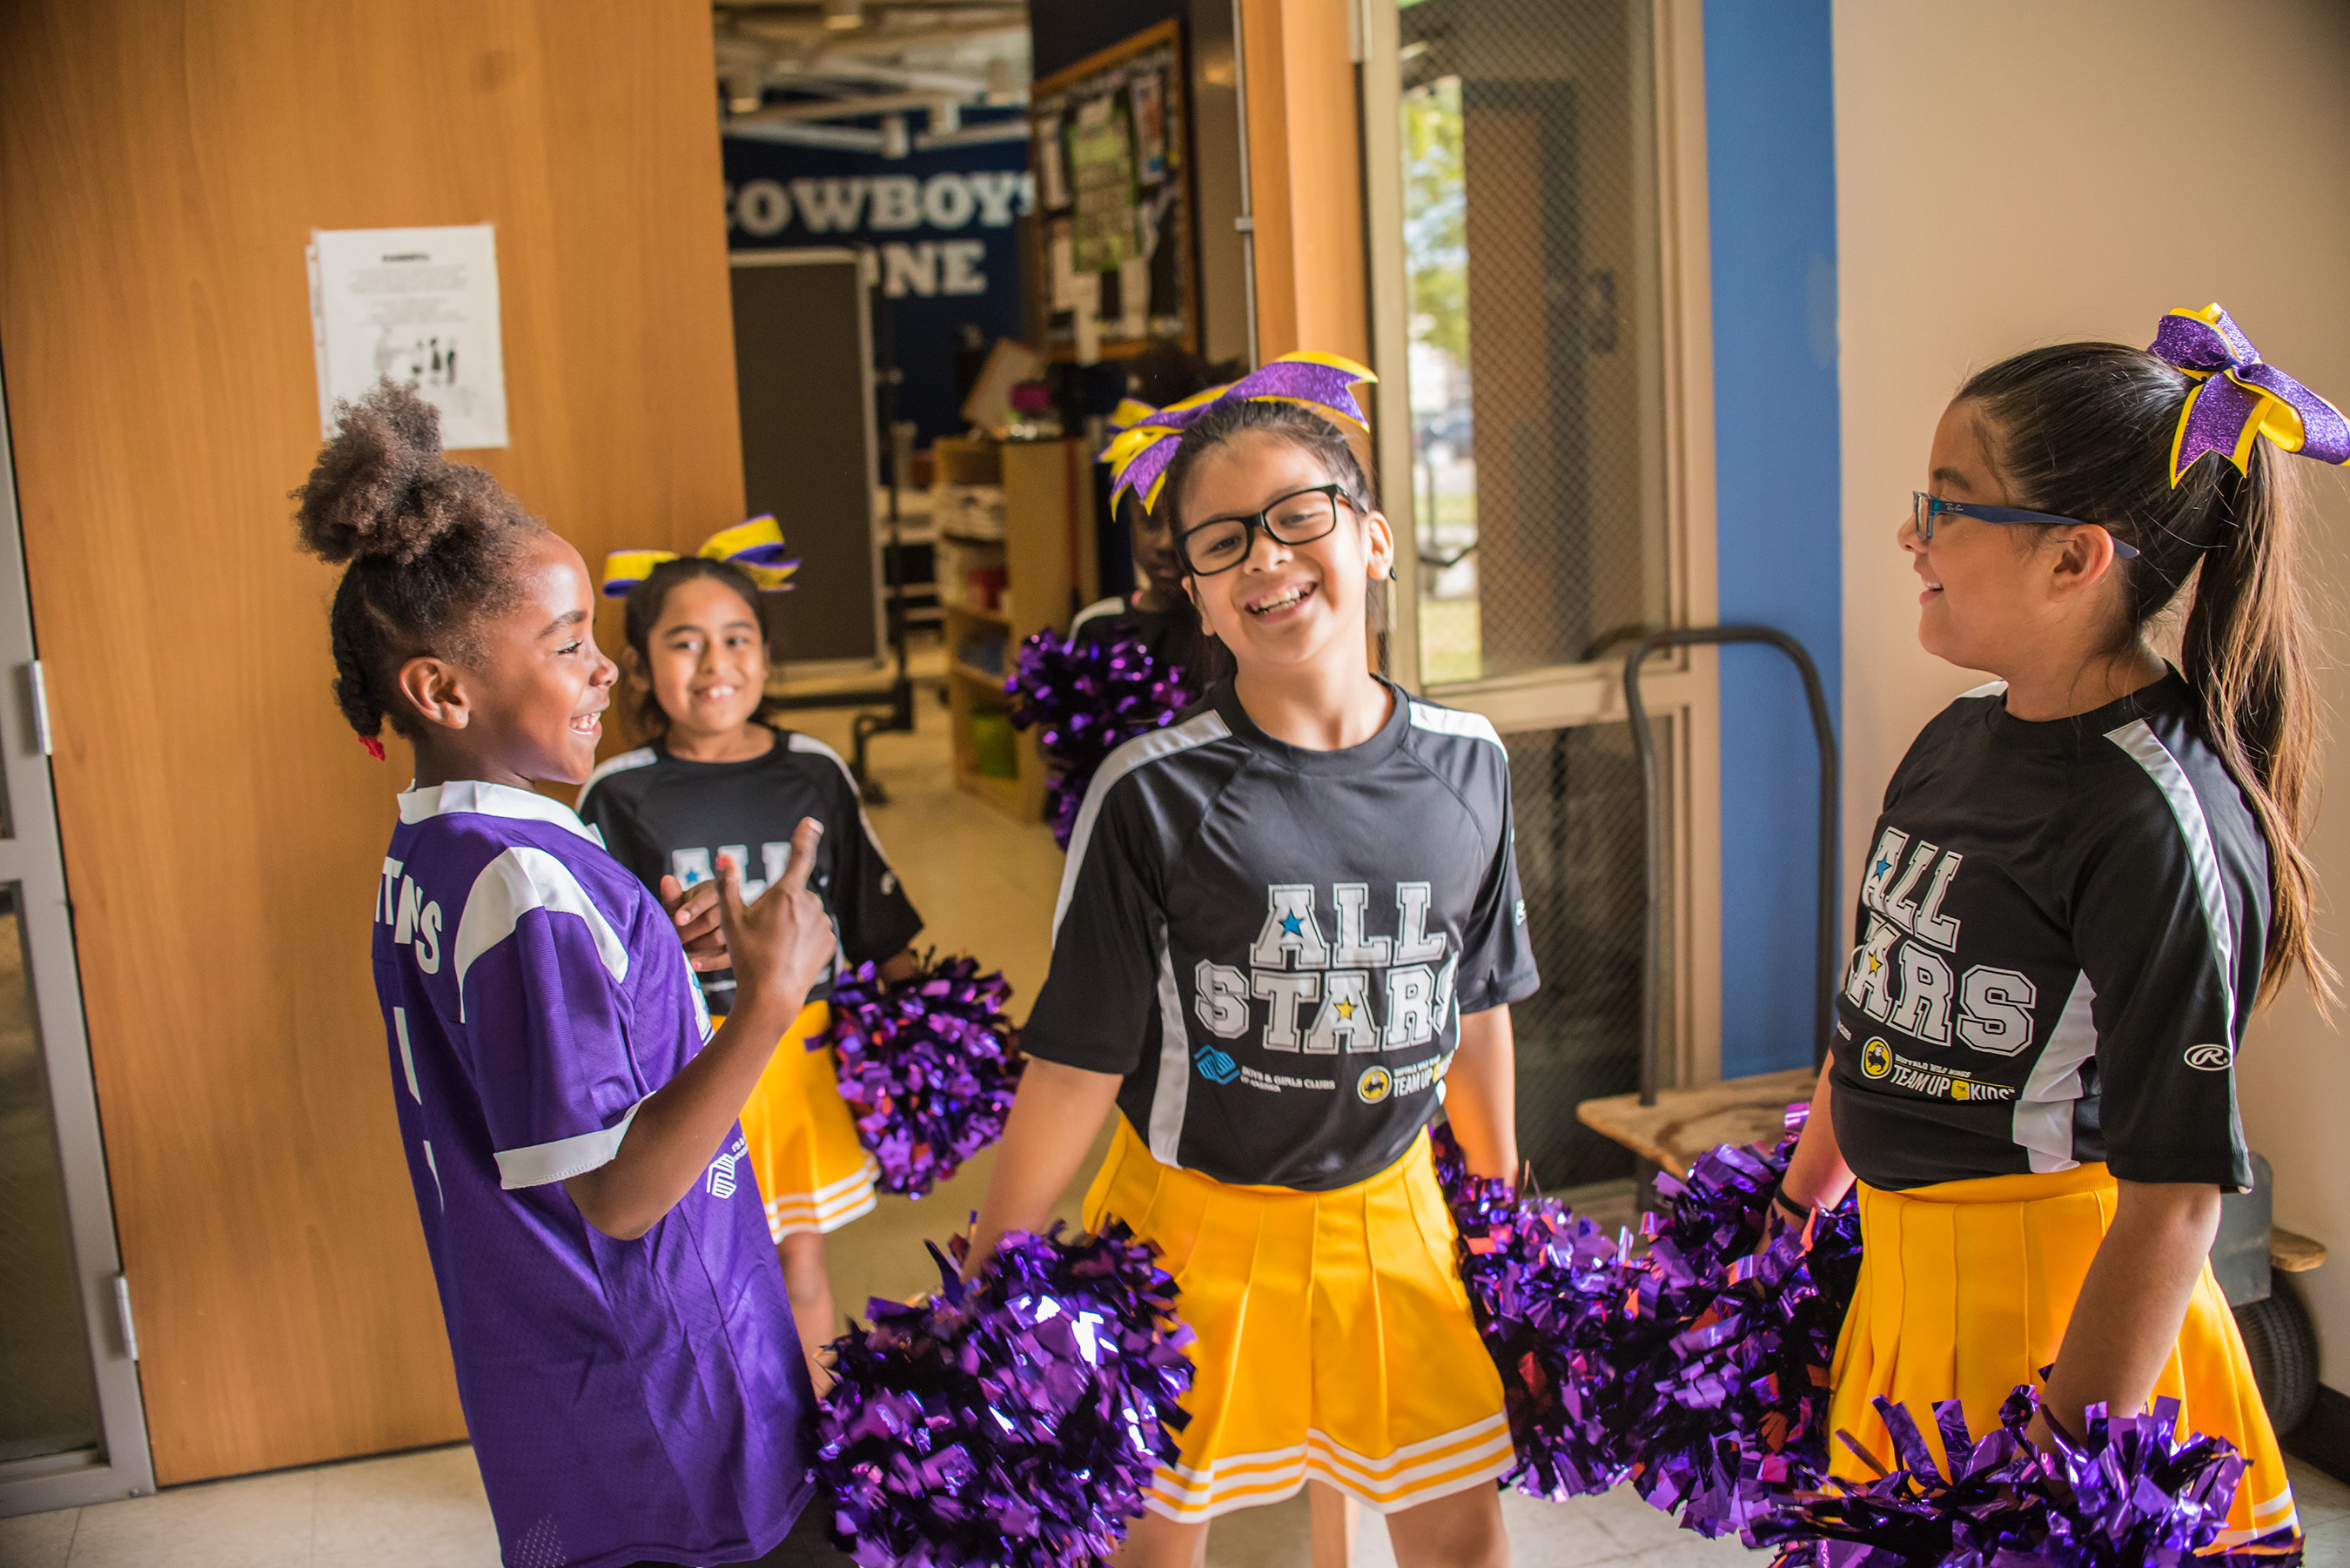 Buffalo Wild Wings Raises Over $1.1 Million For Youth Sports Programs At Boys & Girls Clubs Across The Country, Most Successful Fundraising Effort To Date